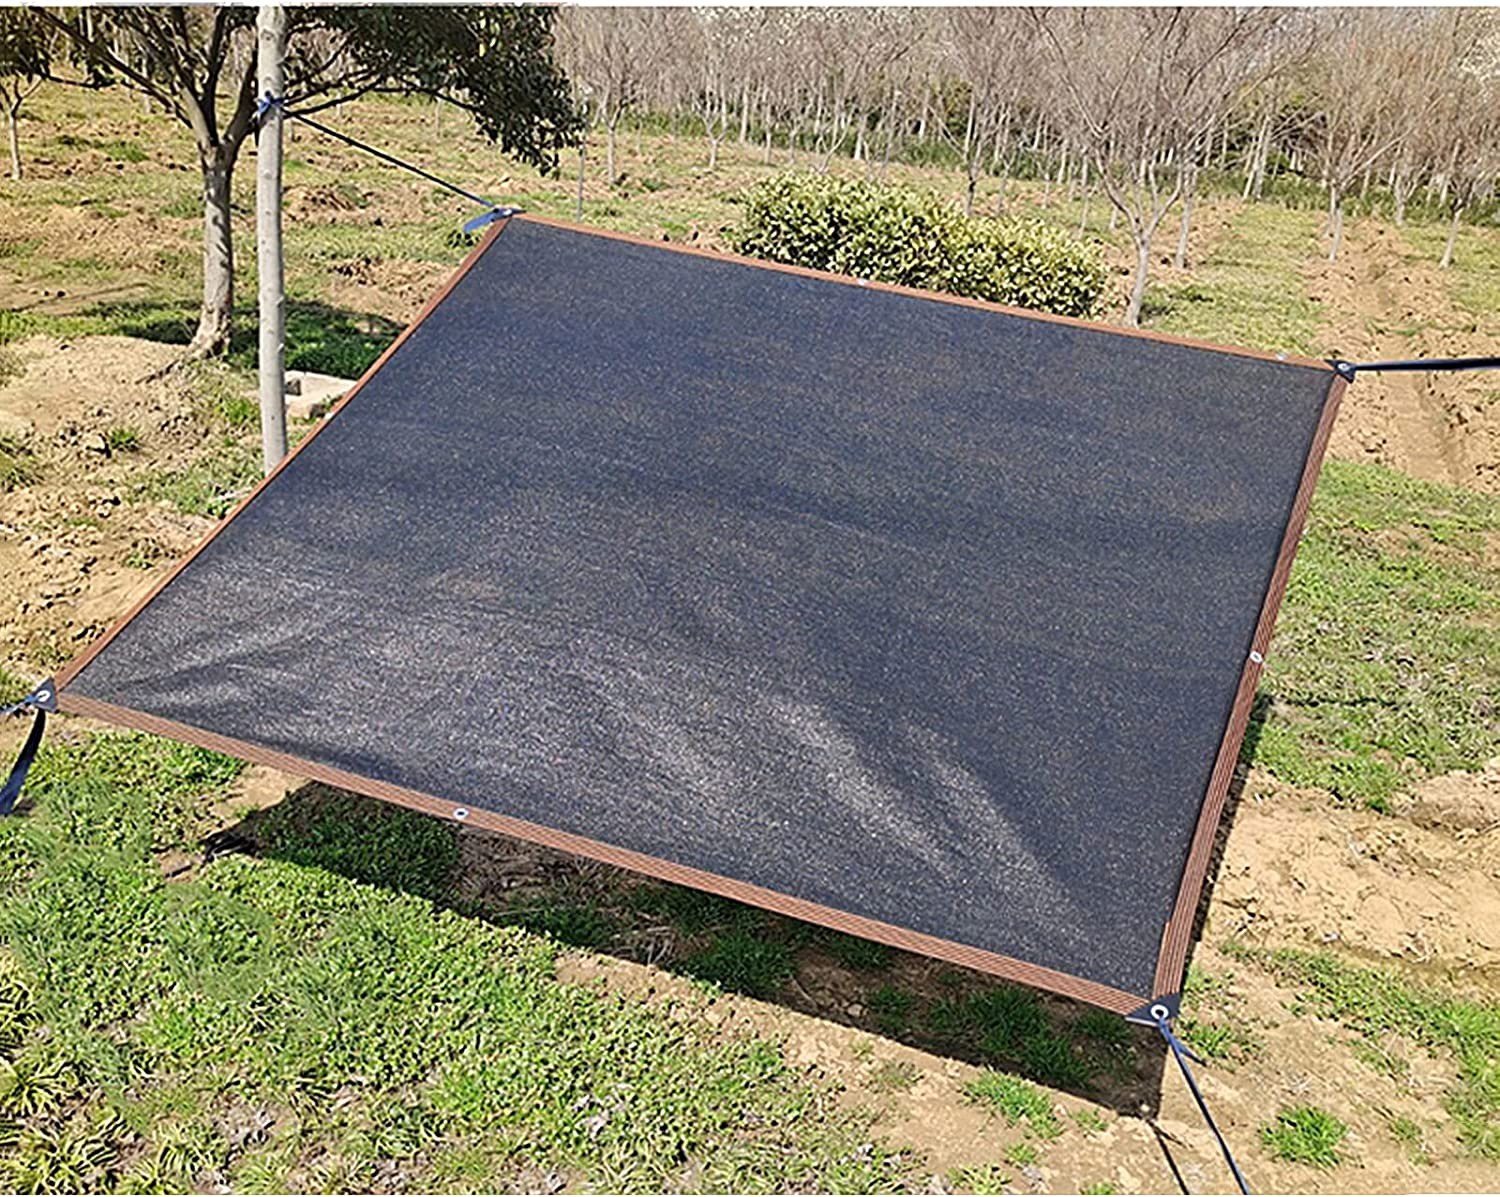 70% Max 45% OFF Shade Cloth for Patio 26x32 Spring new work one after another Mesh Tarp Ft Garden P